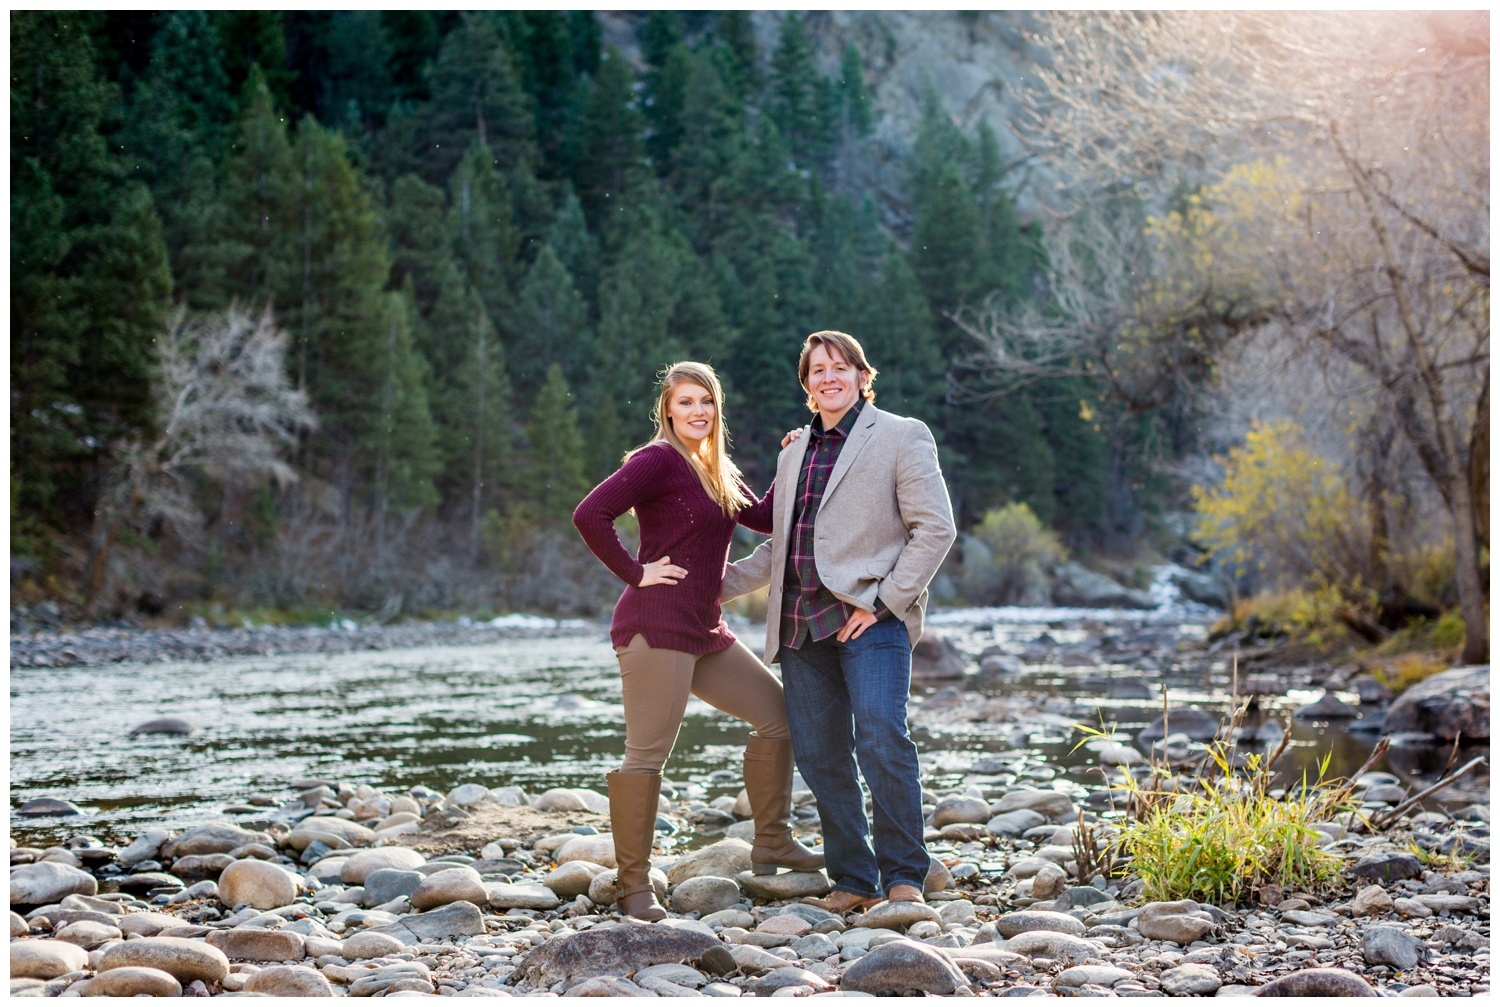 fort collins engagement photography05.jpg